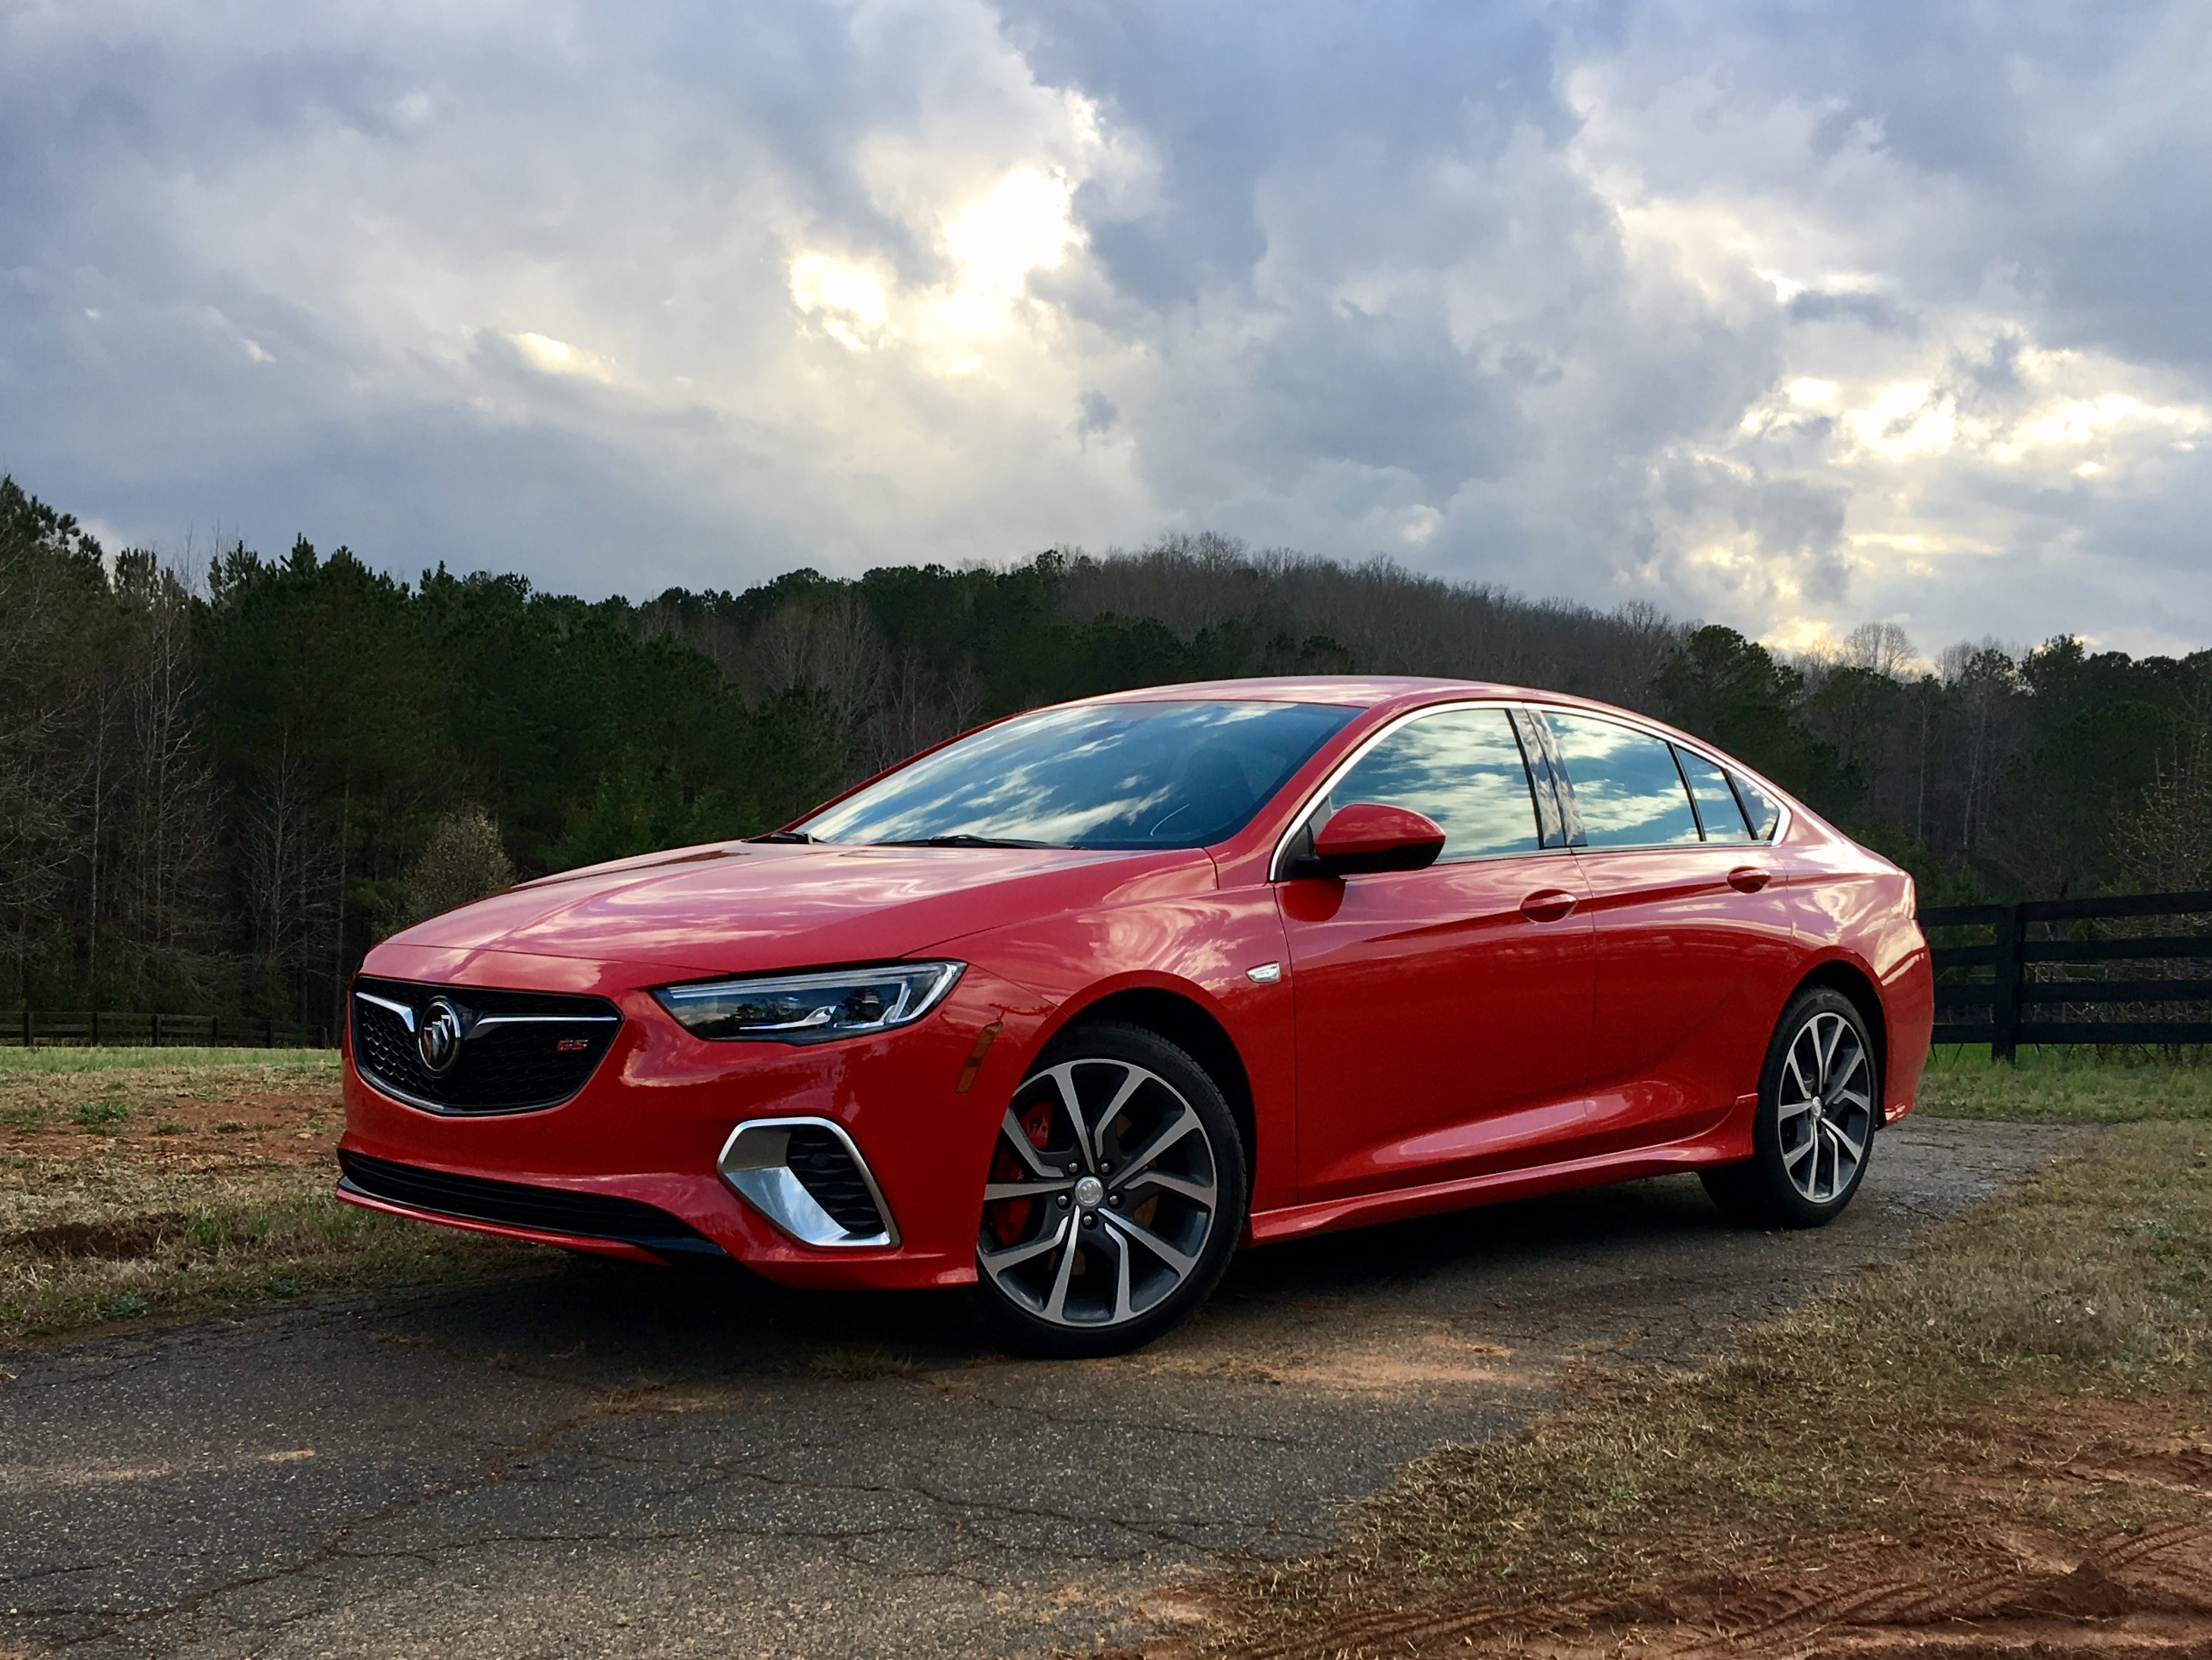 All-new 2018 Buick Regal GS: The Performance Sportback You Weren't Thinking About